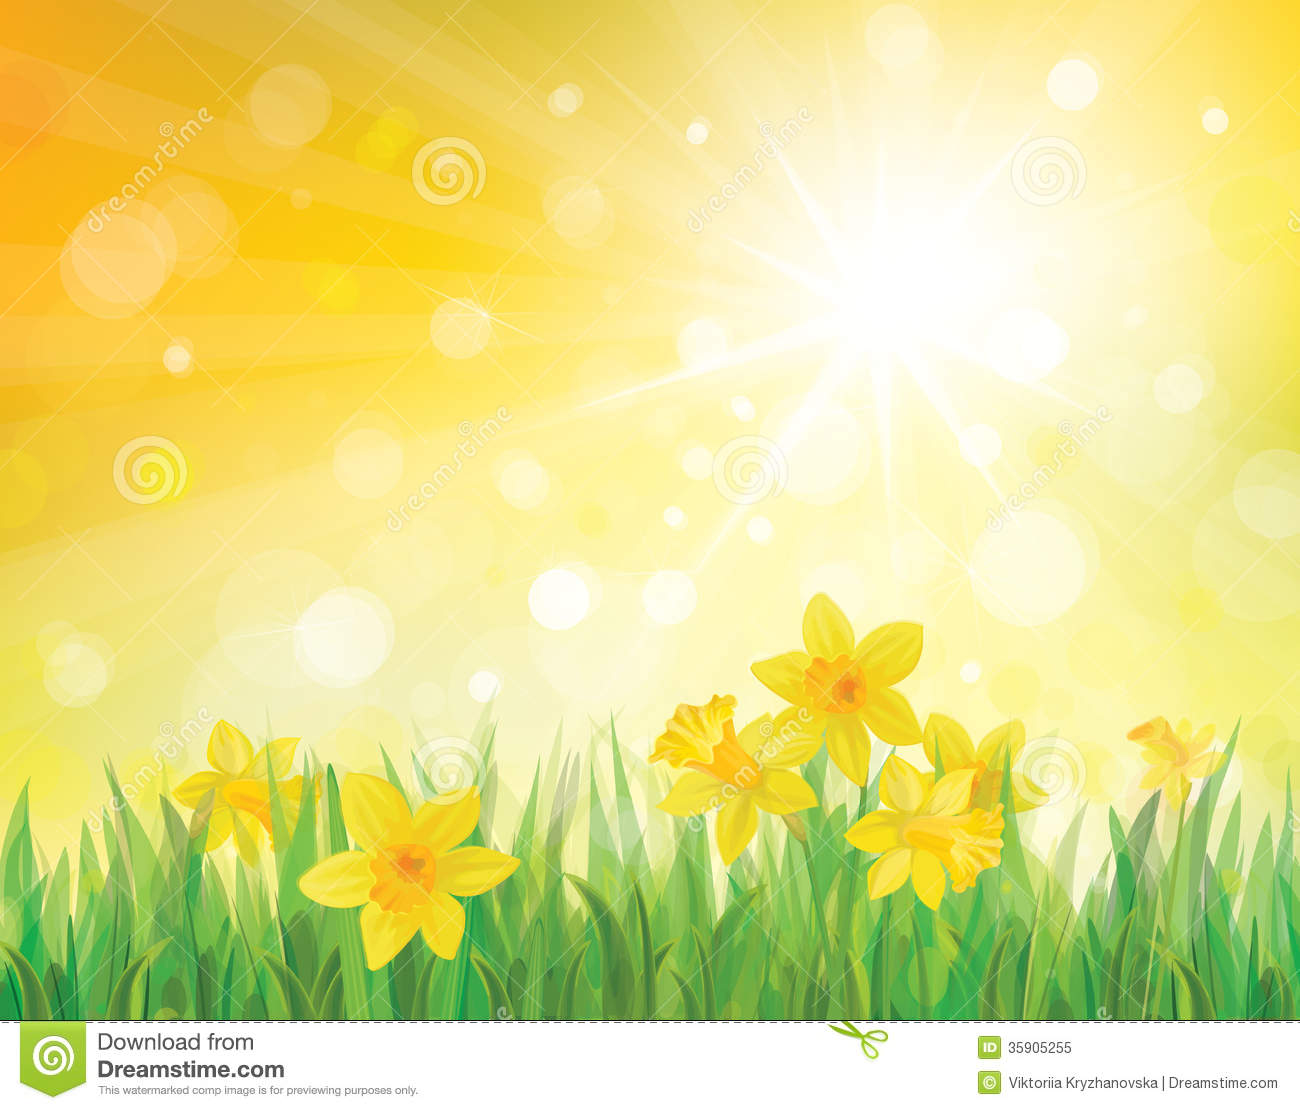 spring clipart background - photo #26